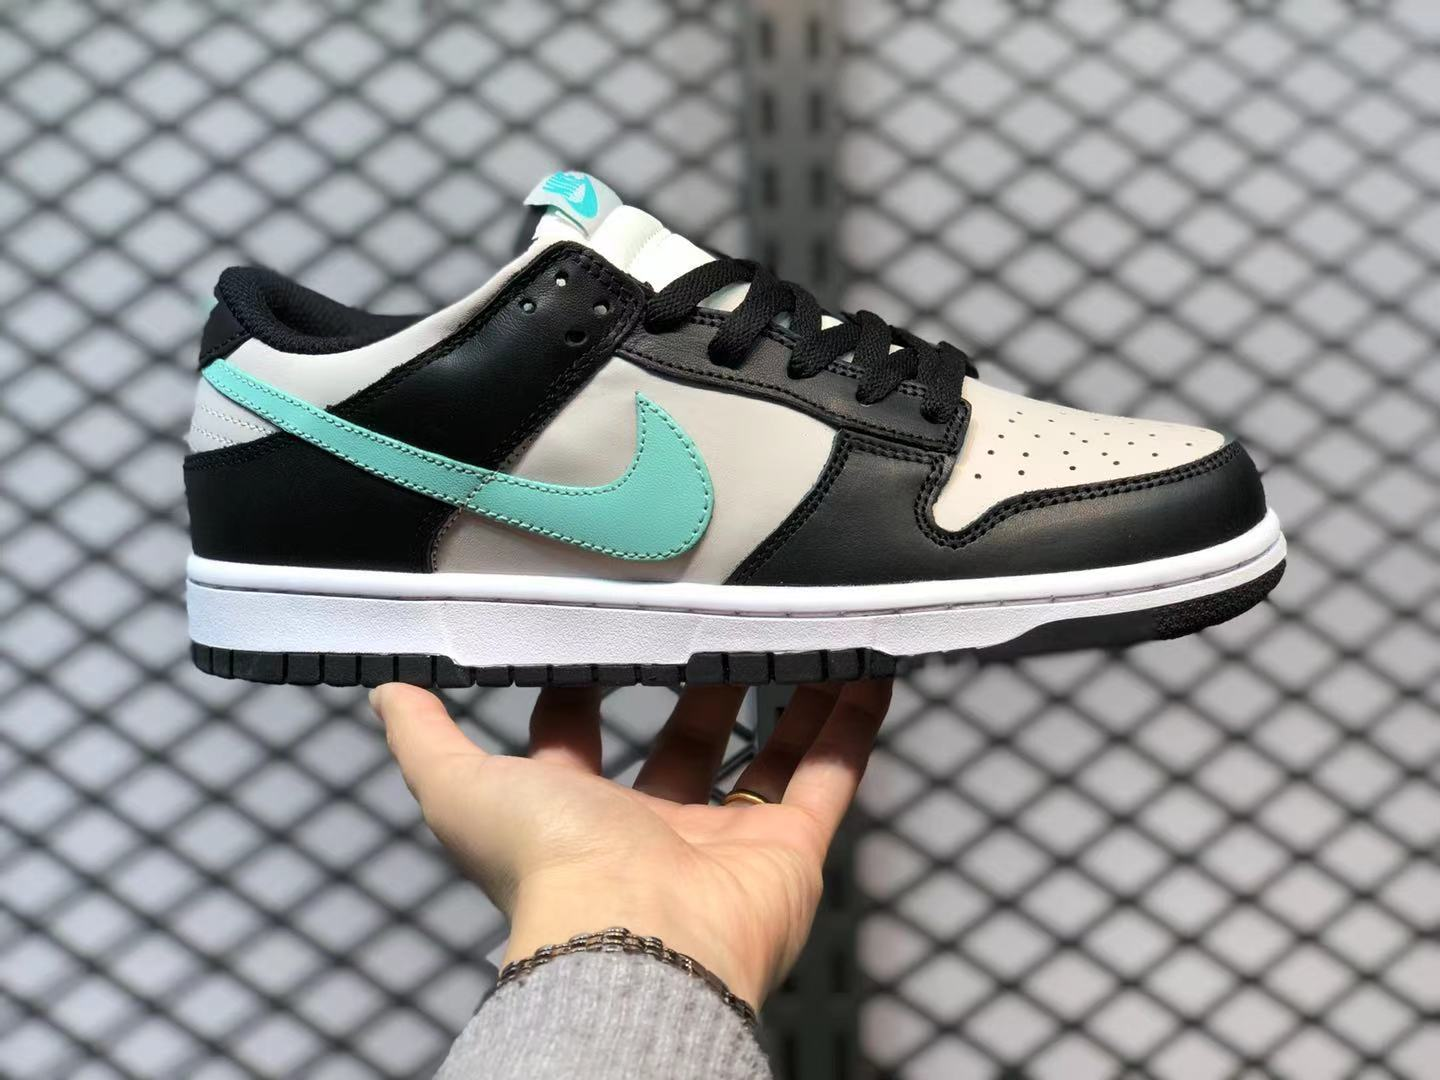 Nike Dunk Low Black Blue CW1590-003 For Sale